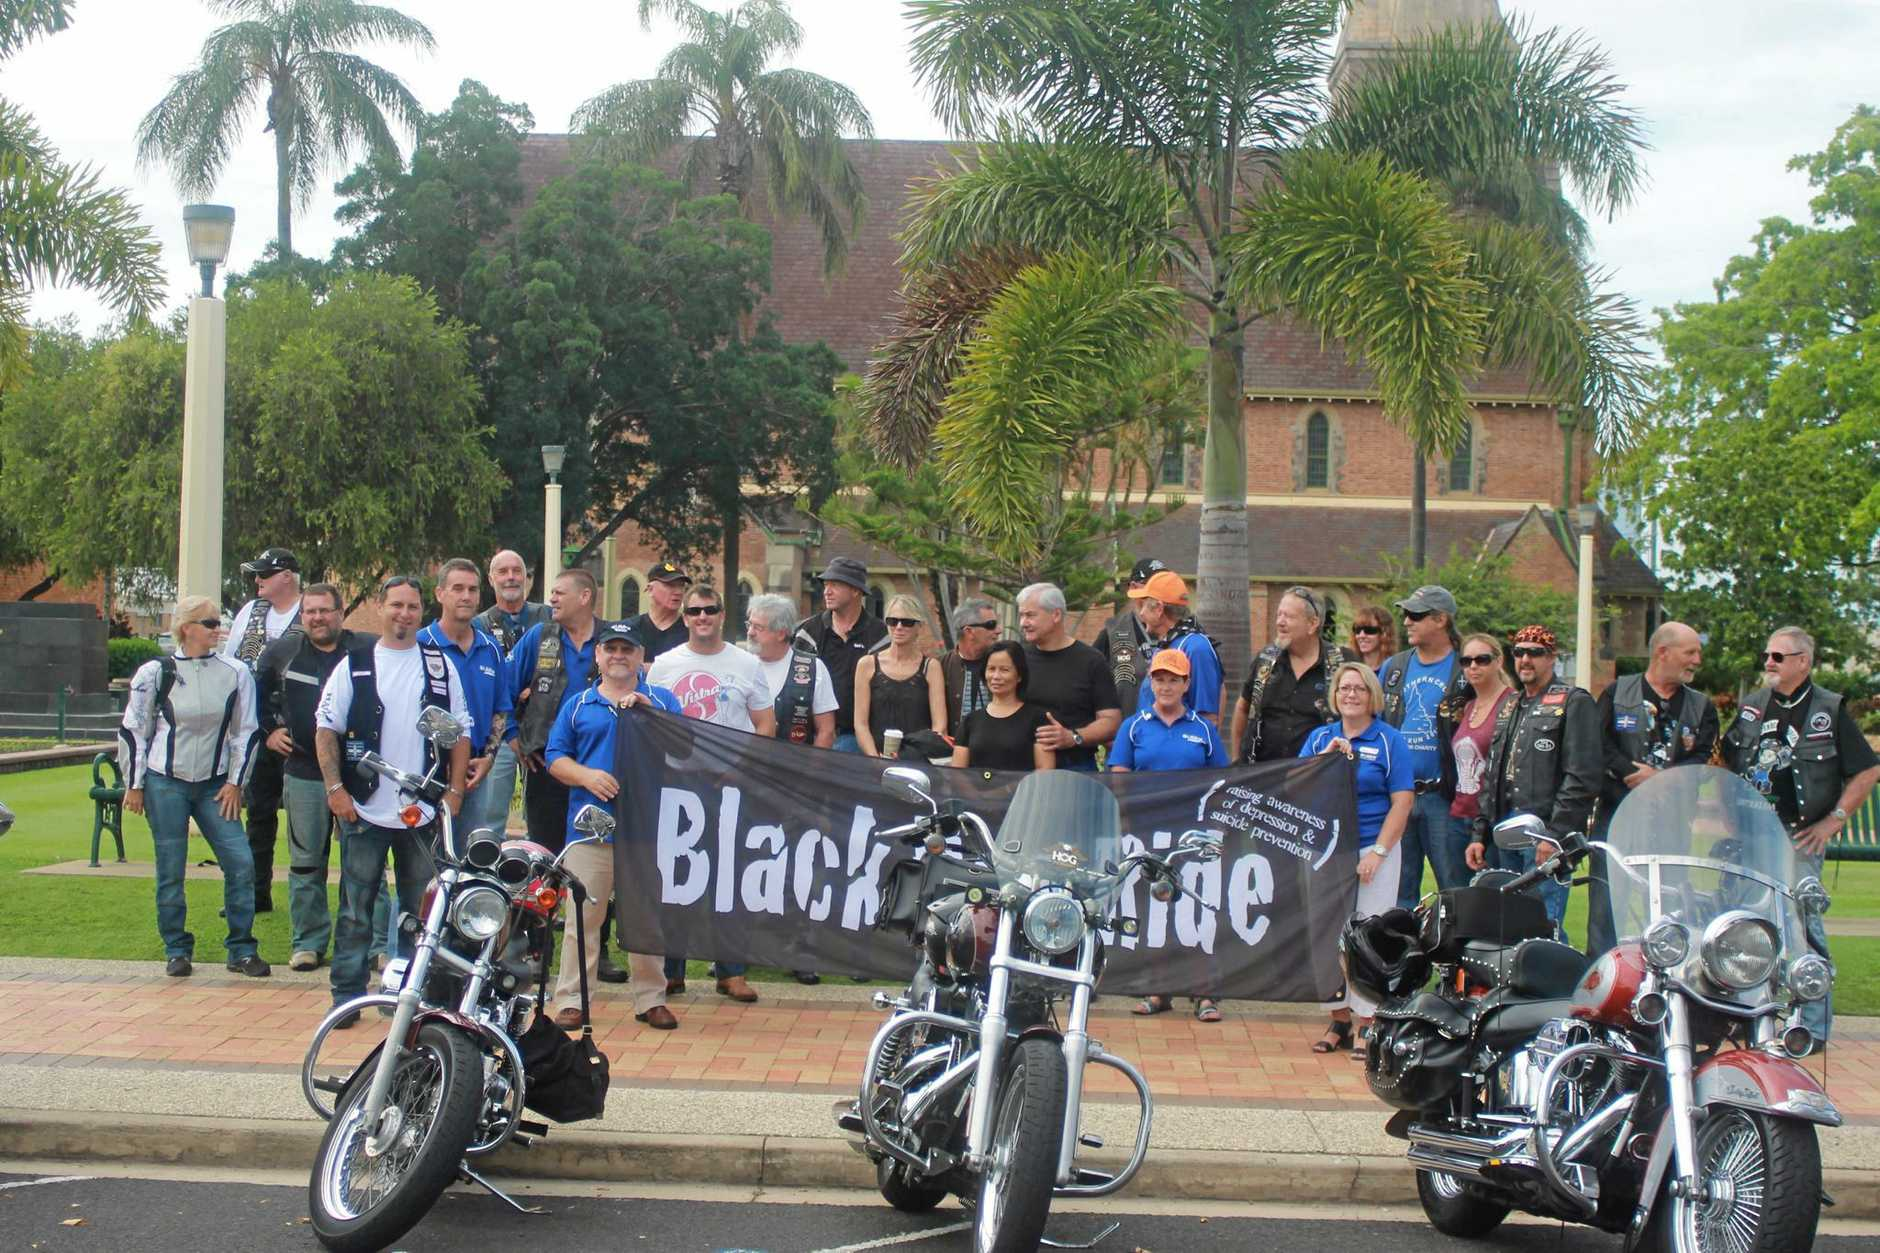 BLACKDOG RUN:  raise awareness to depression and suicide.